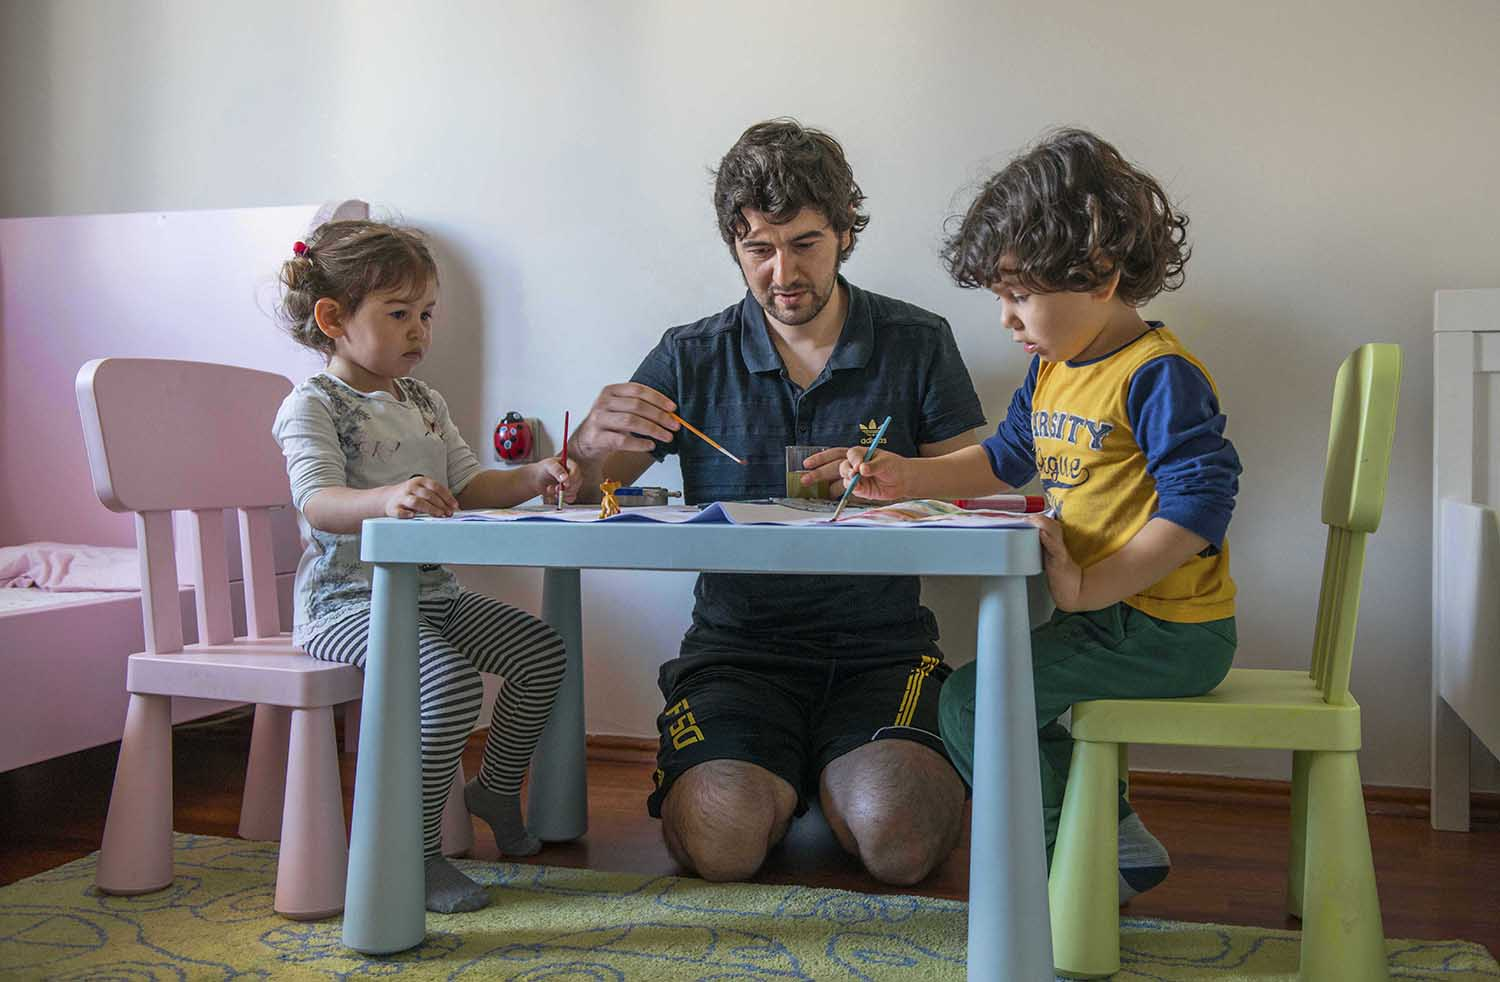 Father and his two children engage in artwork (Turkey).